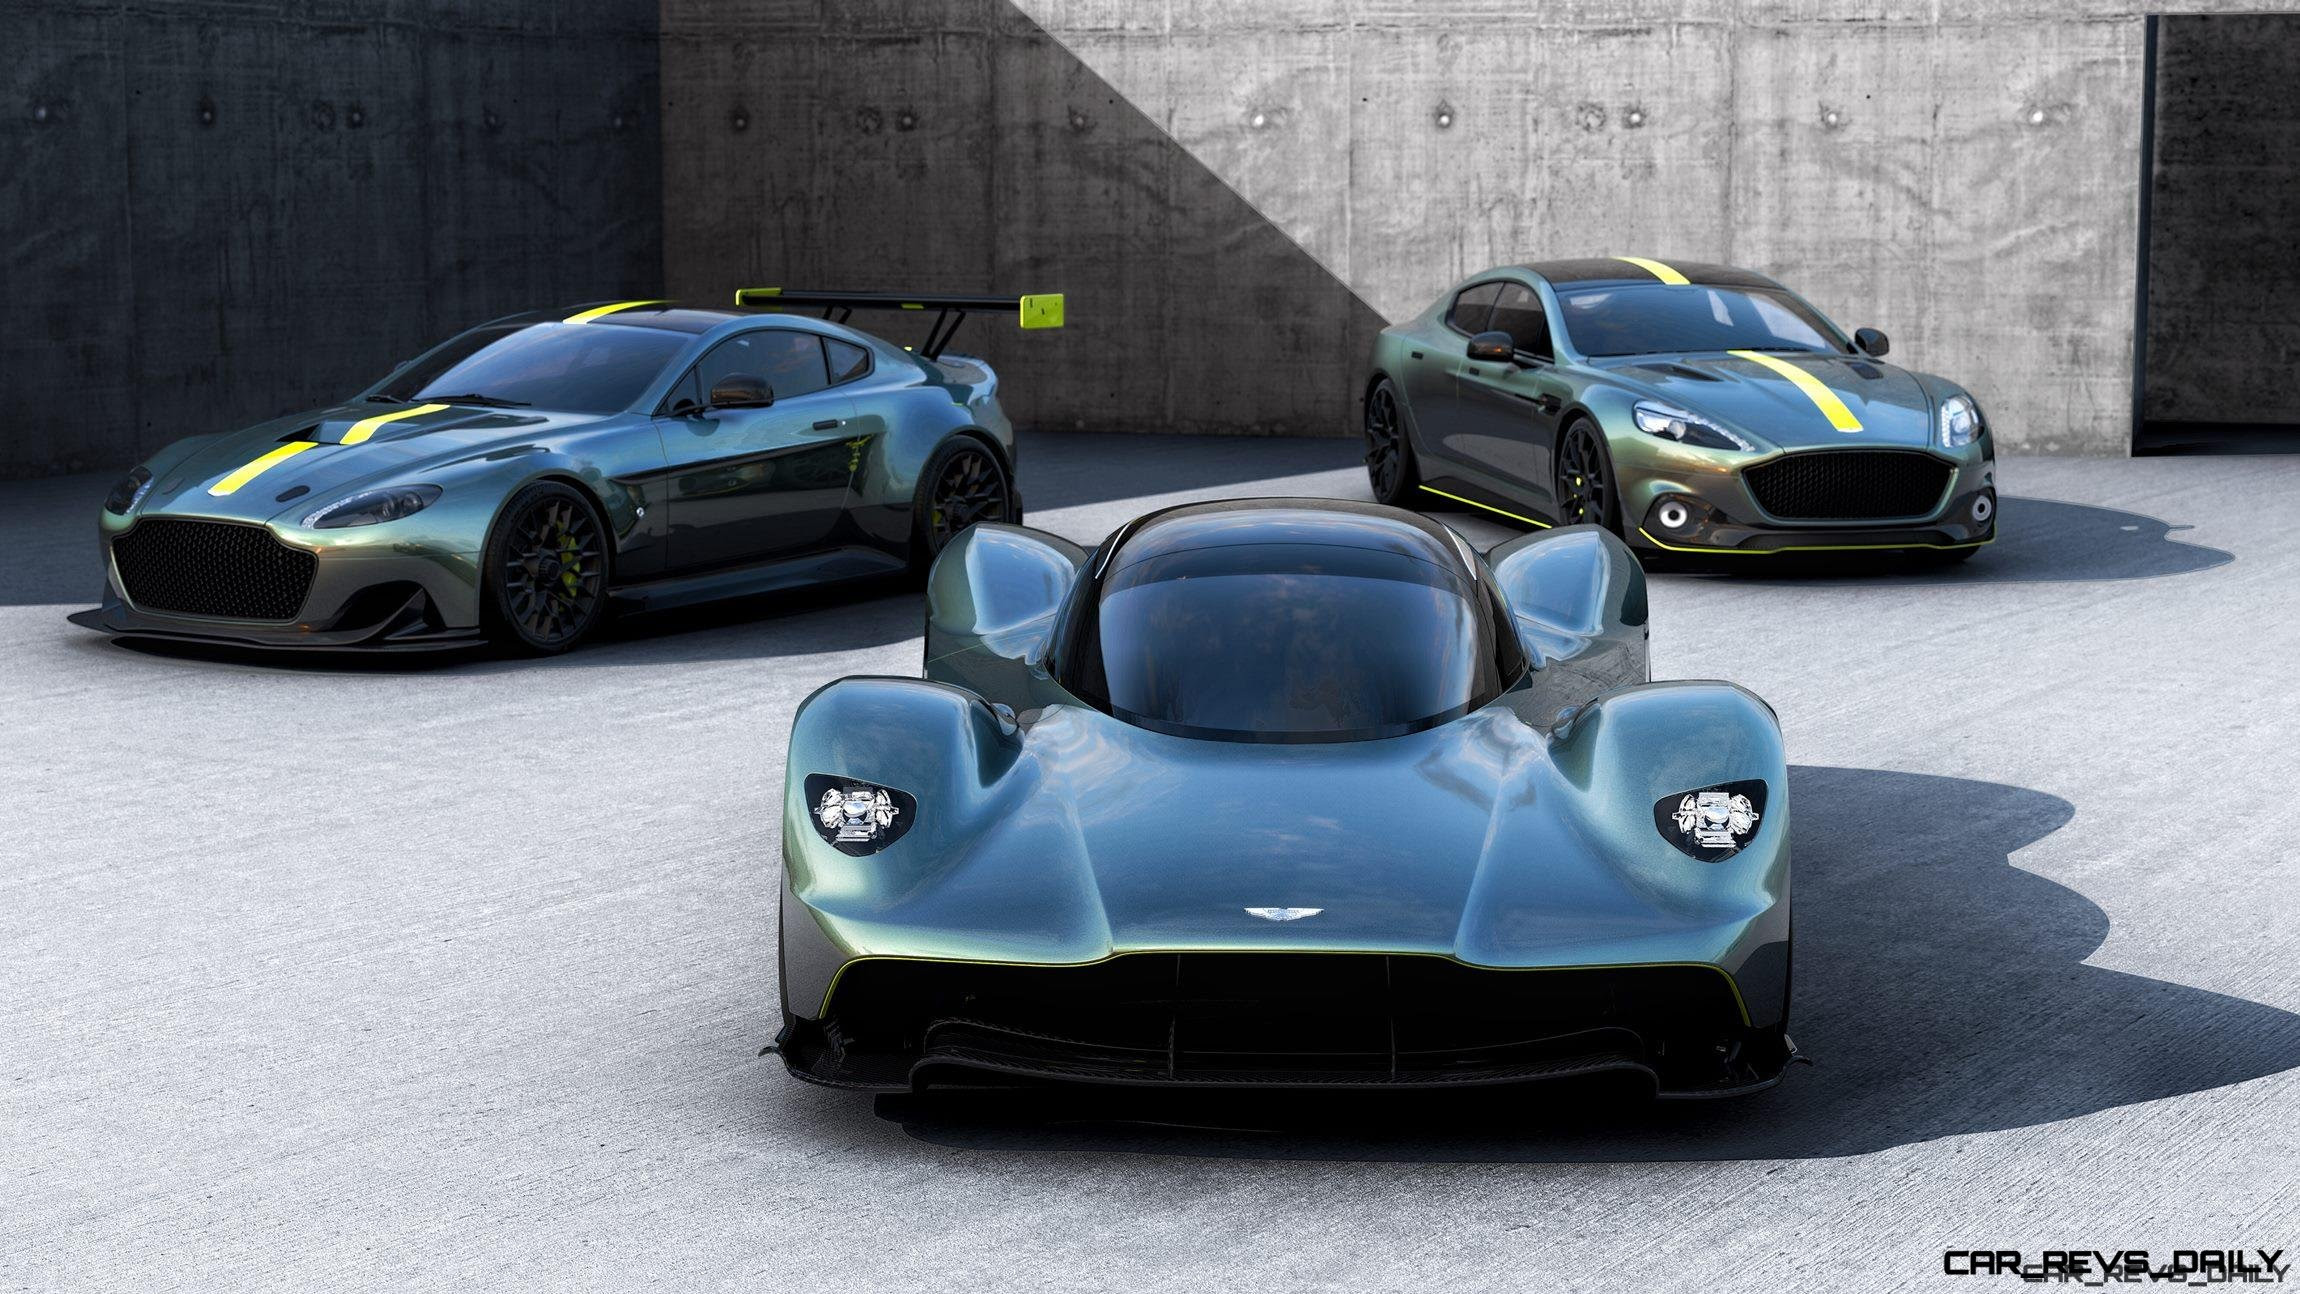 Aston Martin Unveils Valkyrie Rapide Amr And Vantage Amr Pro Video 60 Pics Latest News Car Revs Daily Com